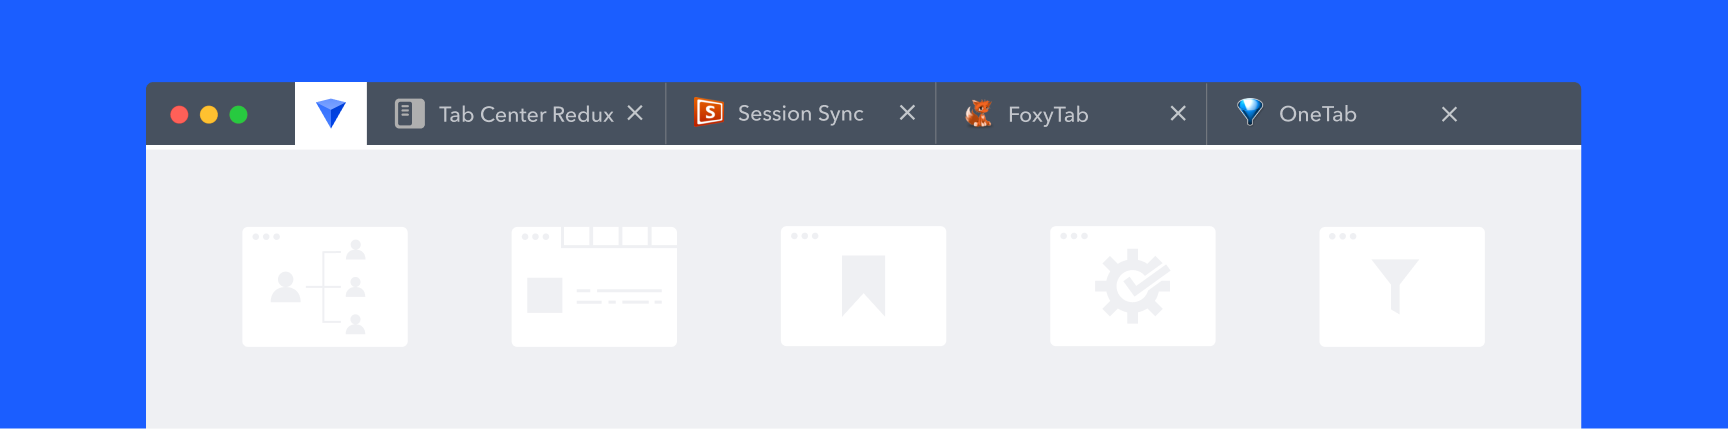 Visualization of top session manager apps in a Firefox browser interface